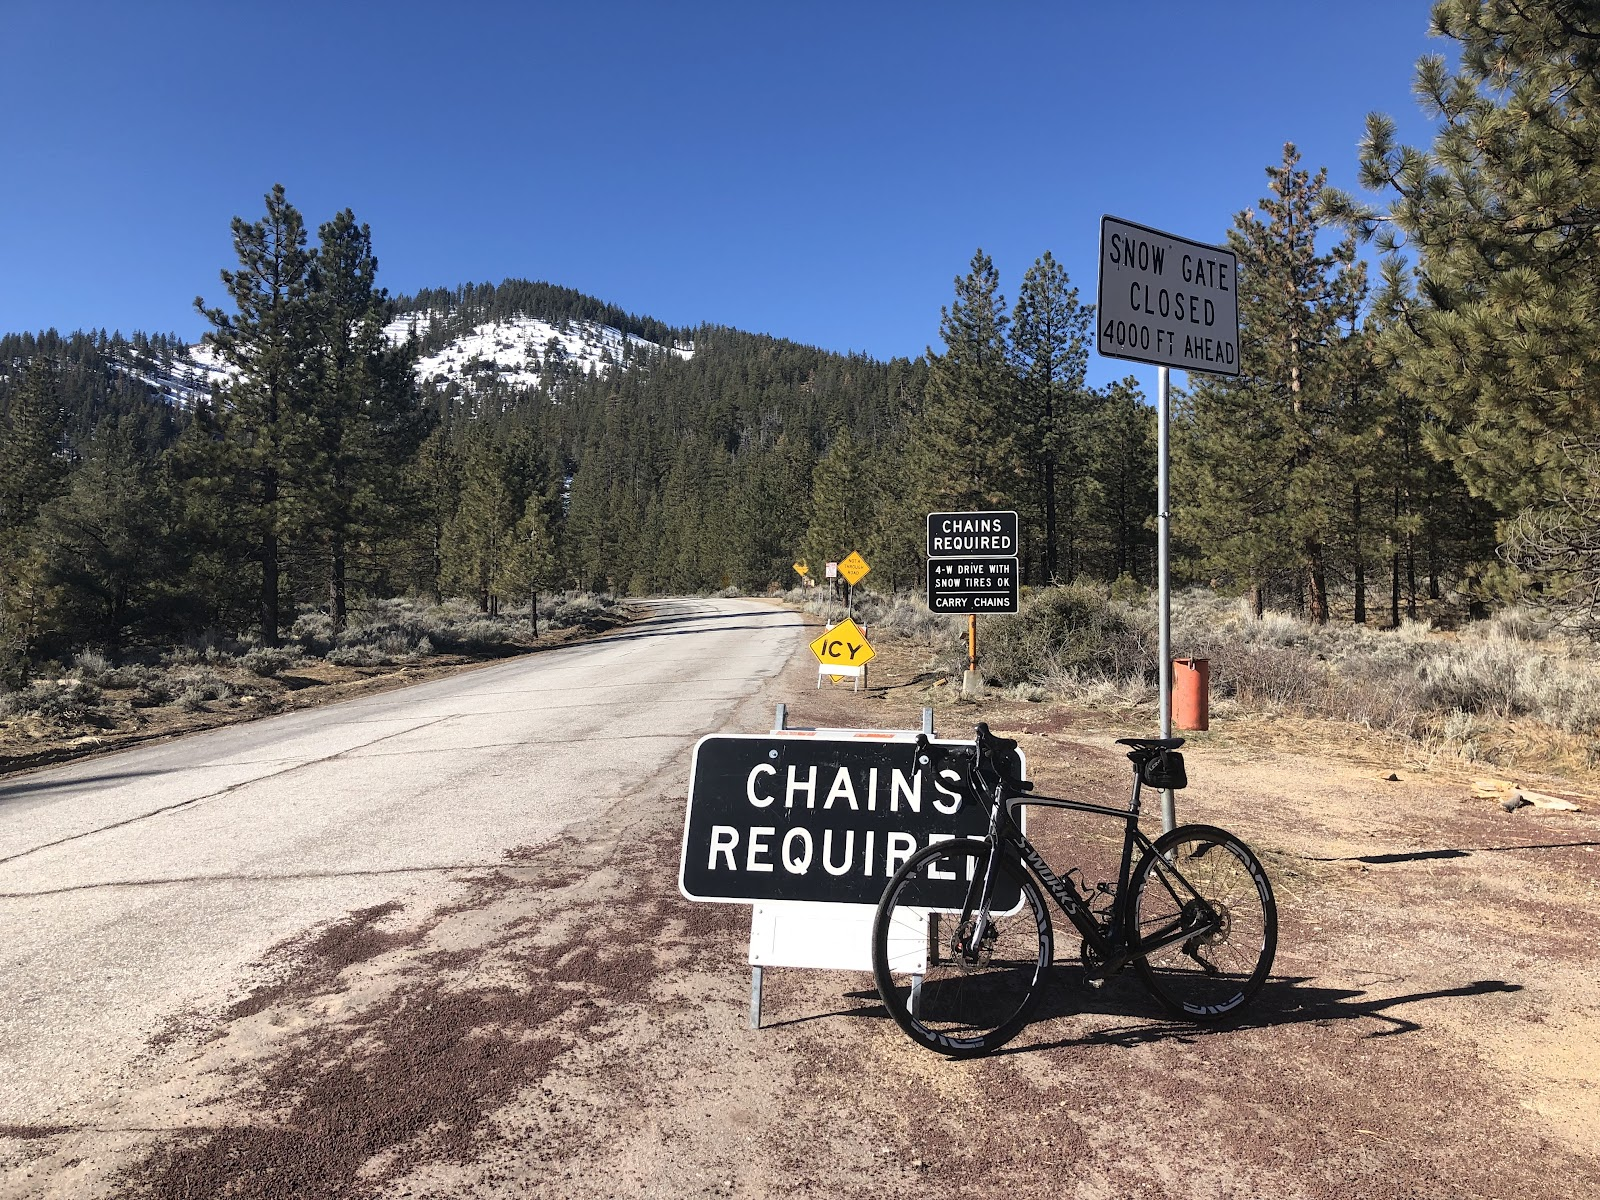 Climbing by bike Mt. Pinos - bike leaning against chains required sign, road, snow covered mountain